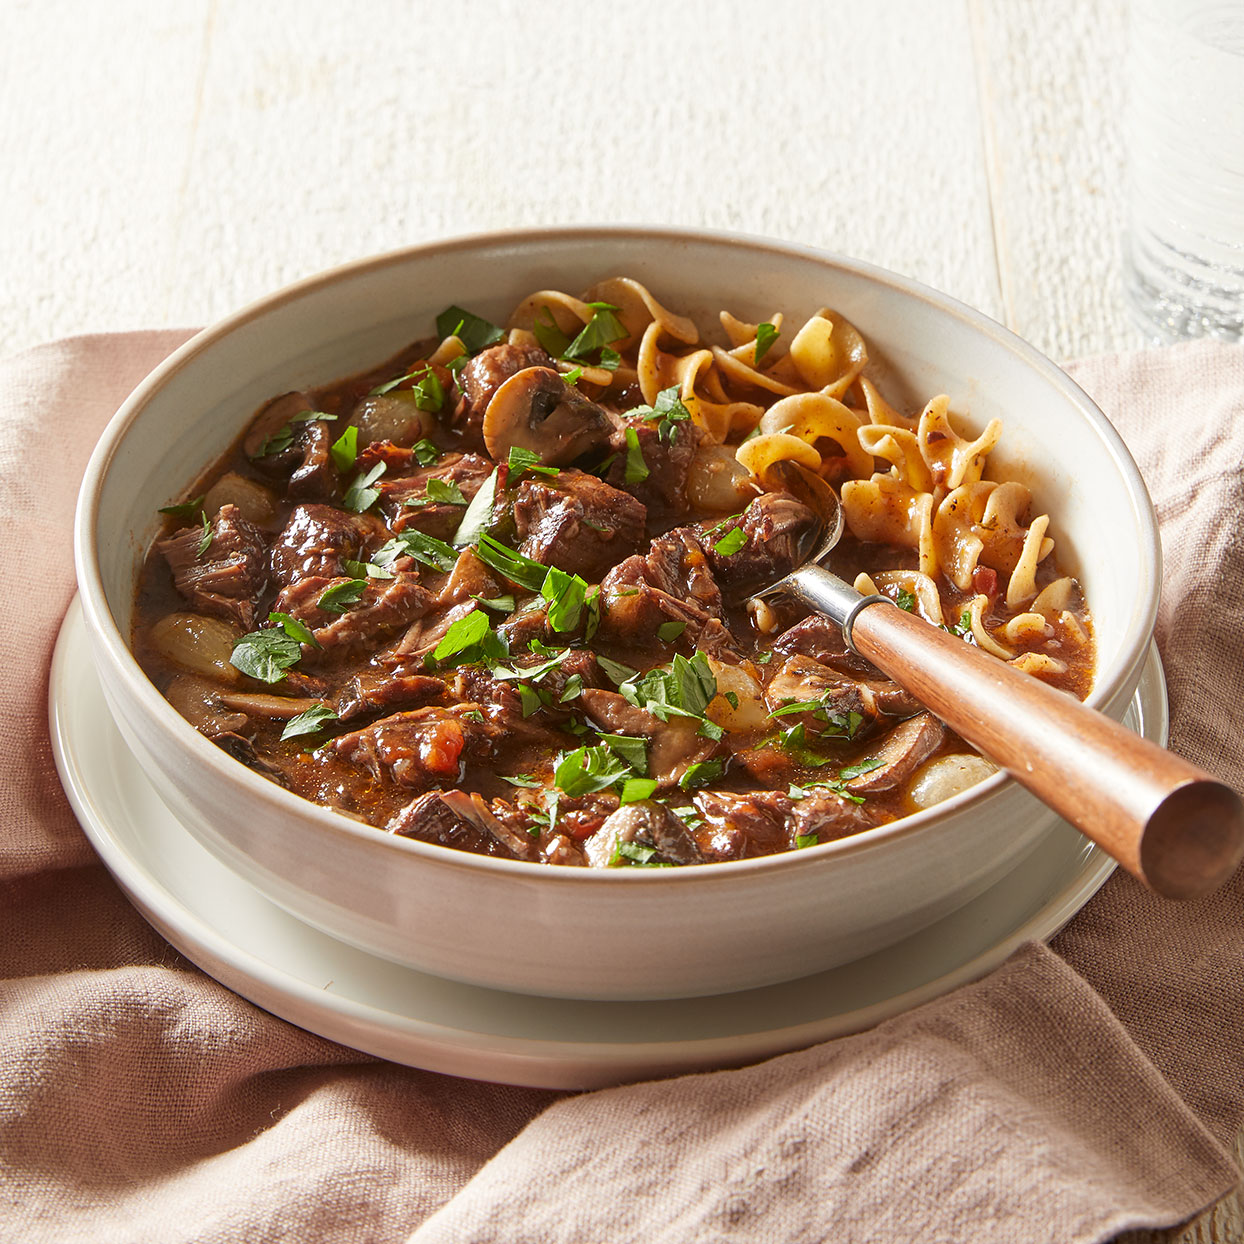 Use your Instant Pot as a pressure cooker for this easy beef bourguignon recipe. If desired, serve this stew with whole-wheat egg noodles to soak up the delicious sauce. Source: Diabetic Living Magazine, Winter 2020